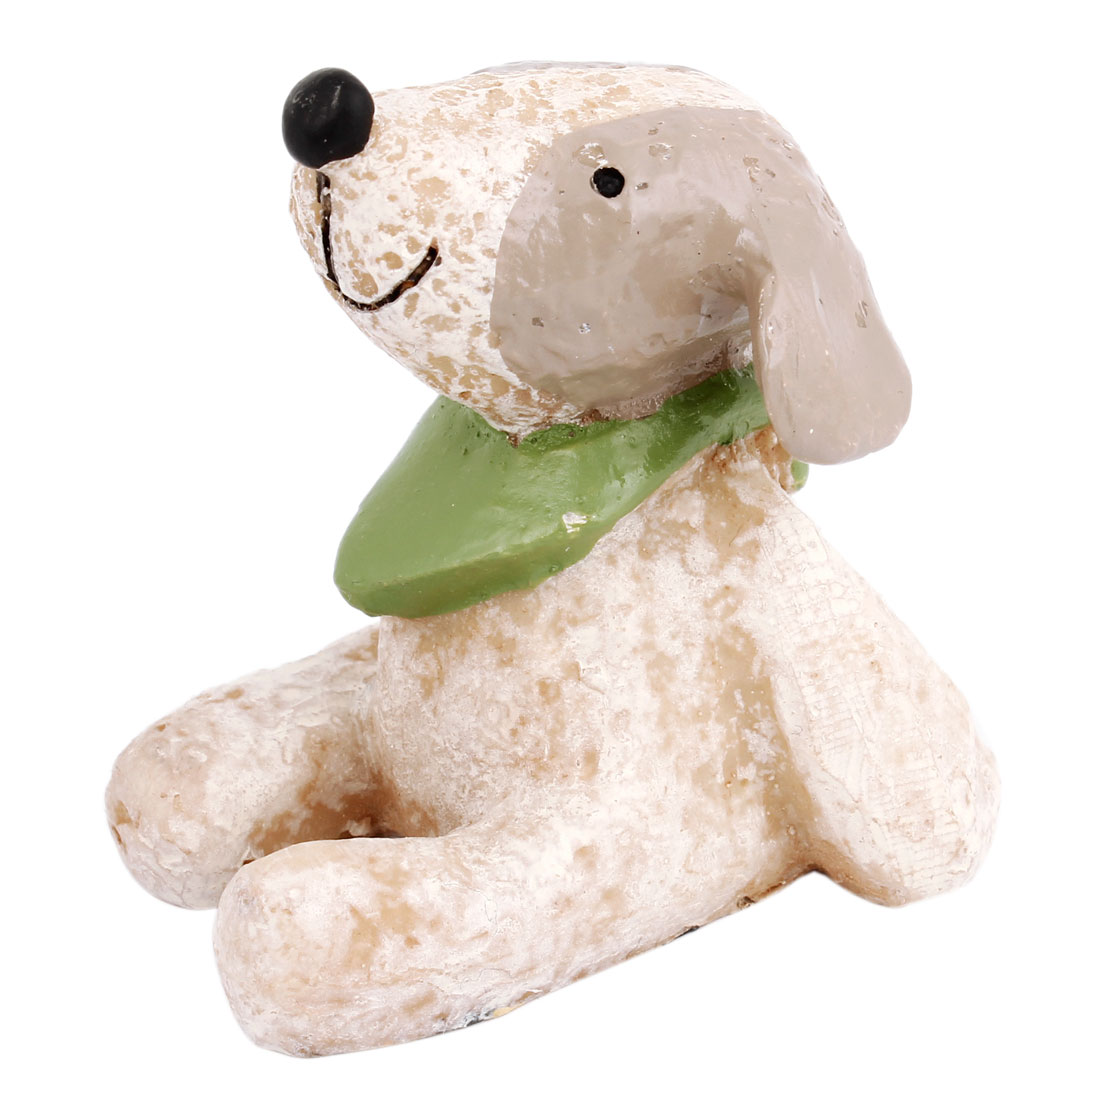 Tabletop Adorn Handmade Craft Dog Shape Ornament Ivory White